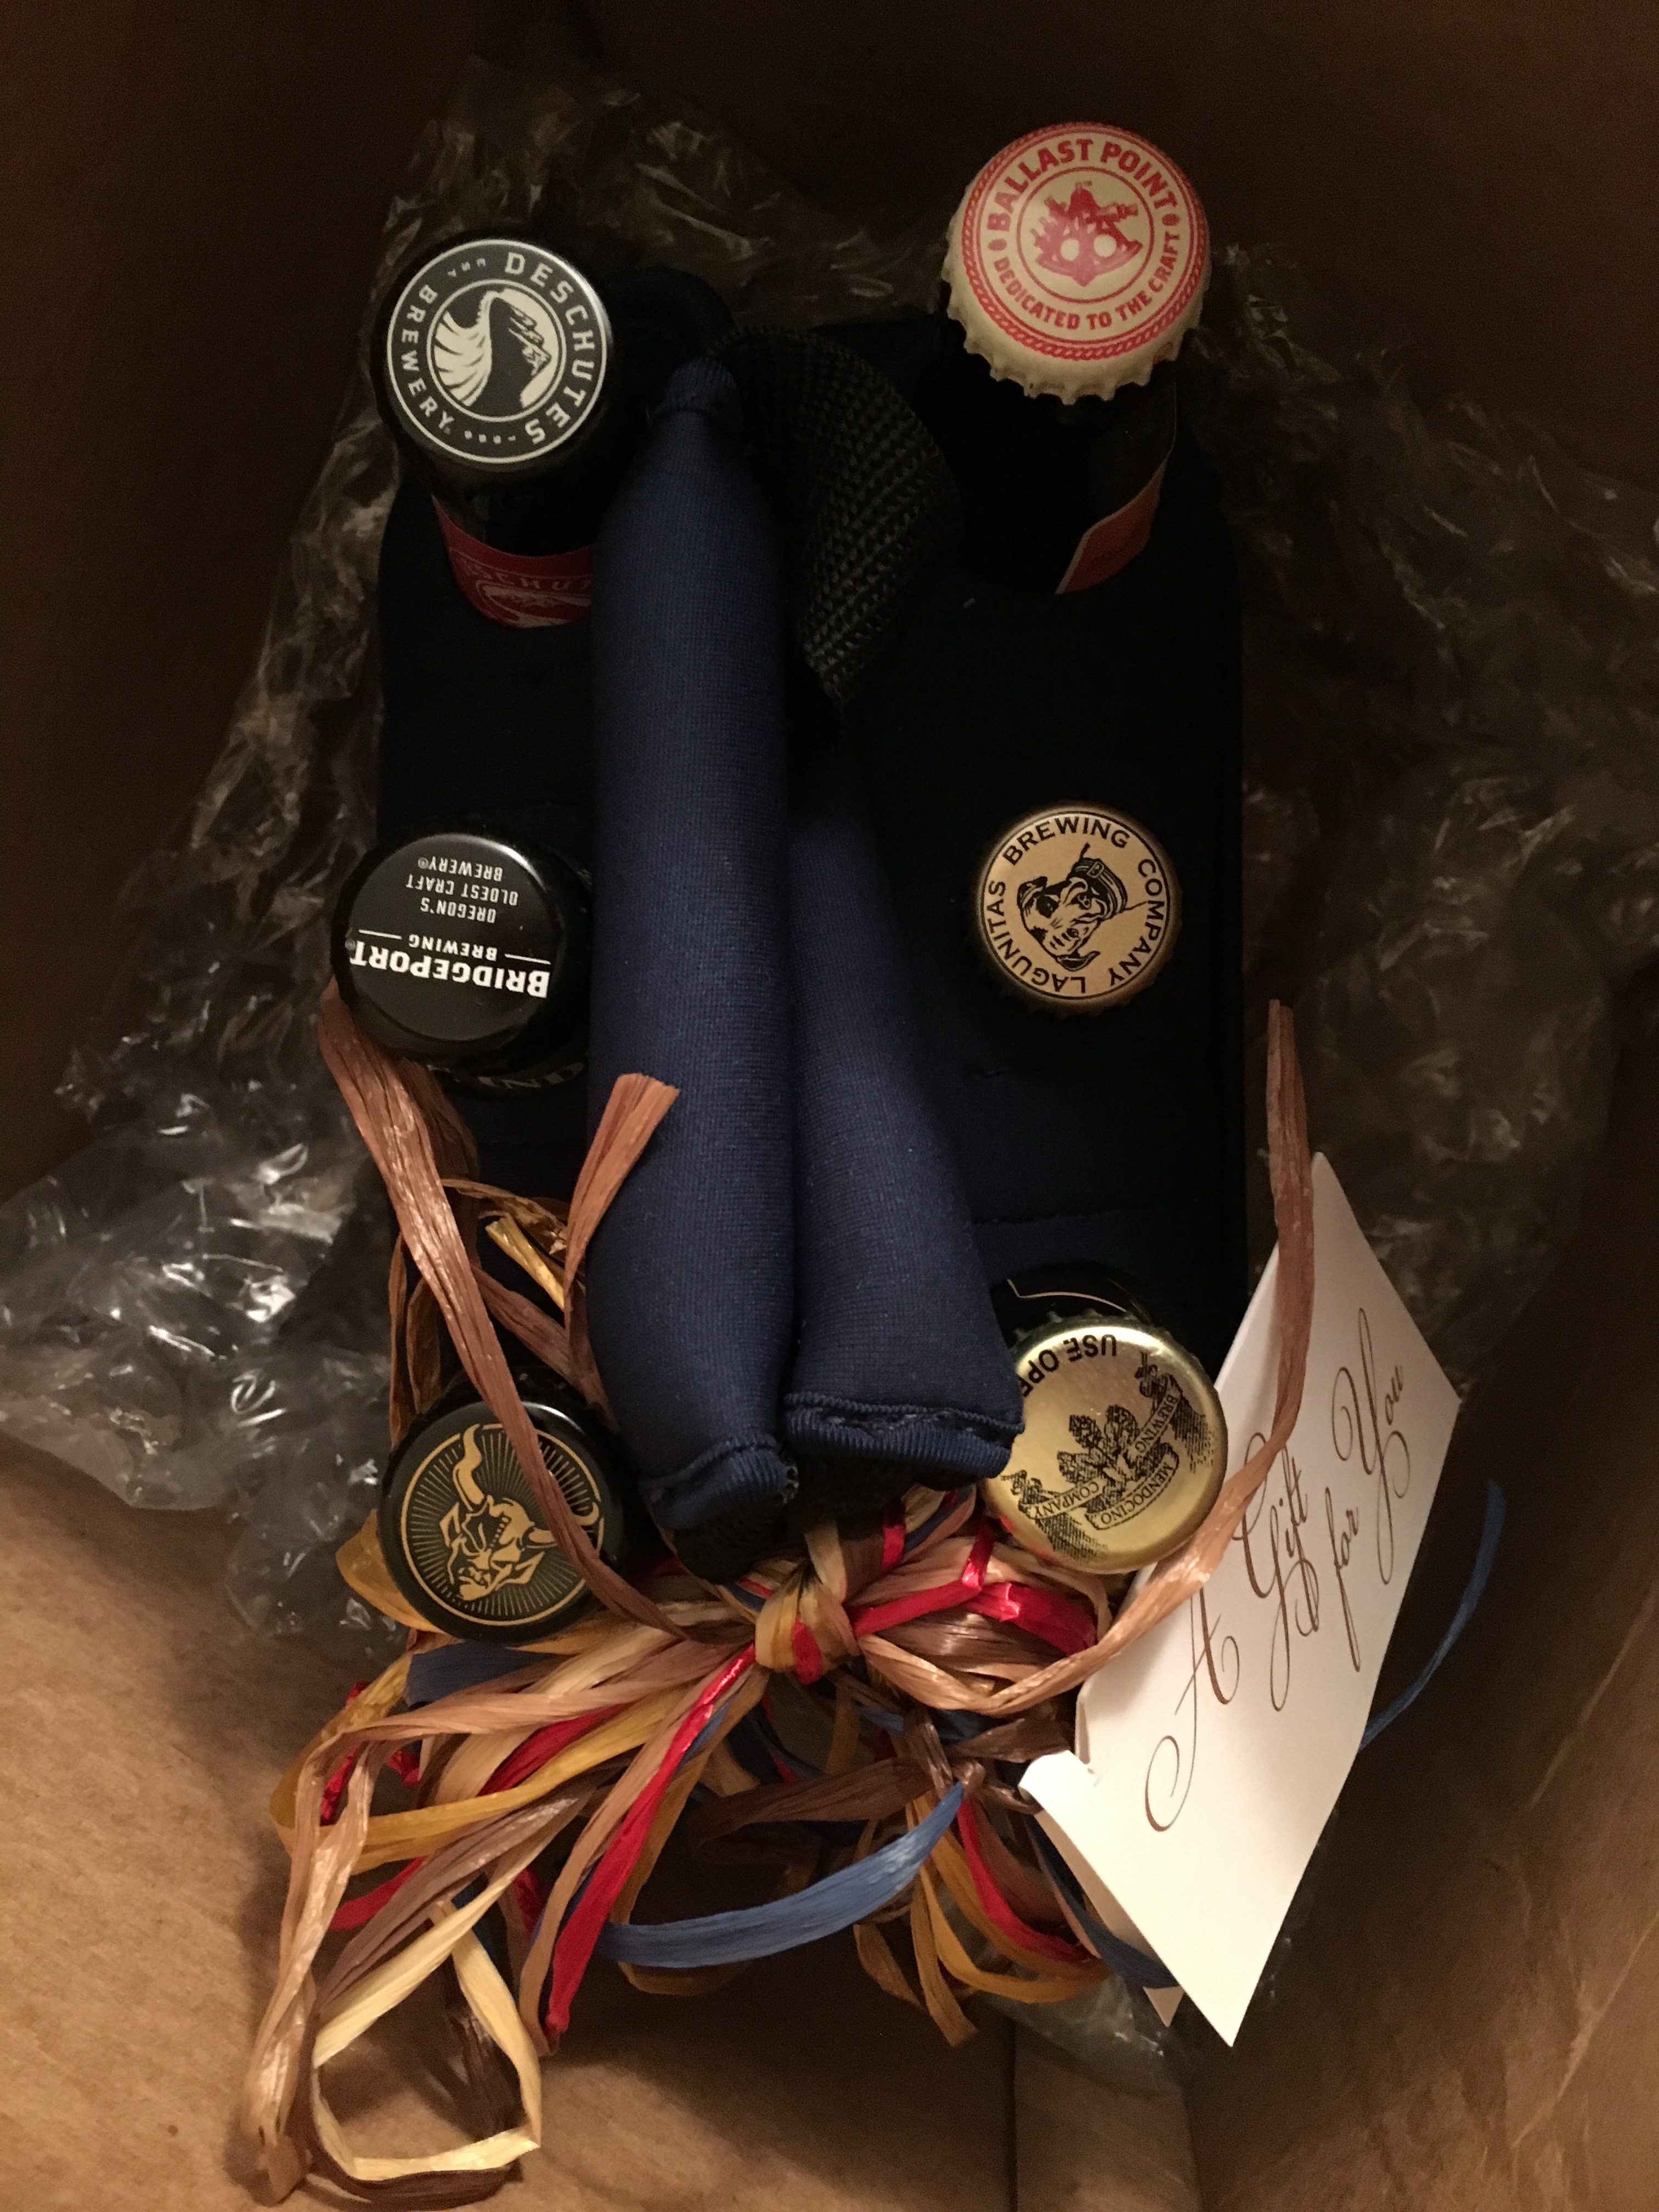 A 6-Pack shipped from Beergifts.com. They offer many different choices of beers for various occasions